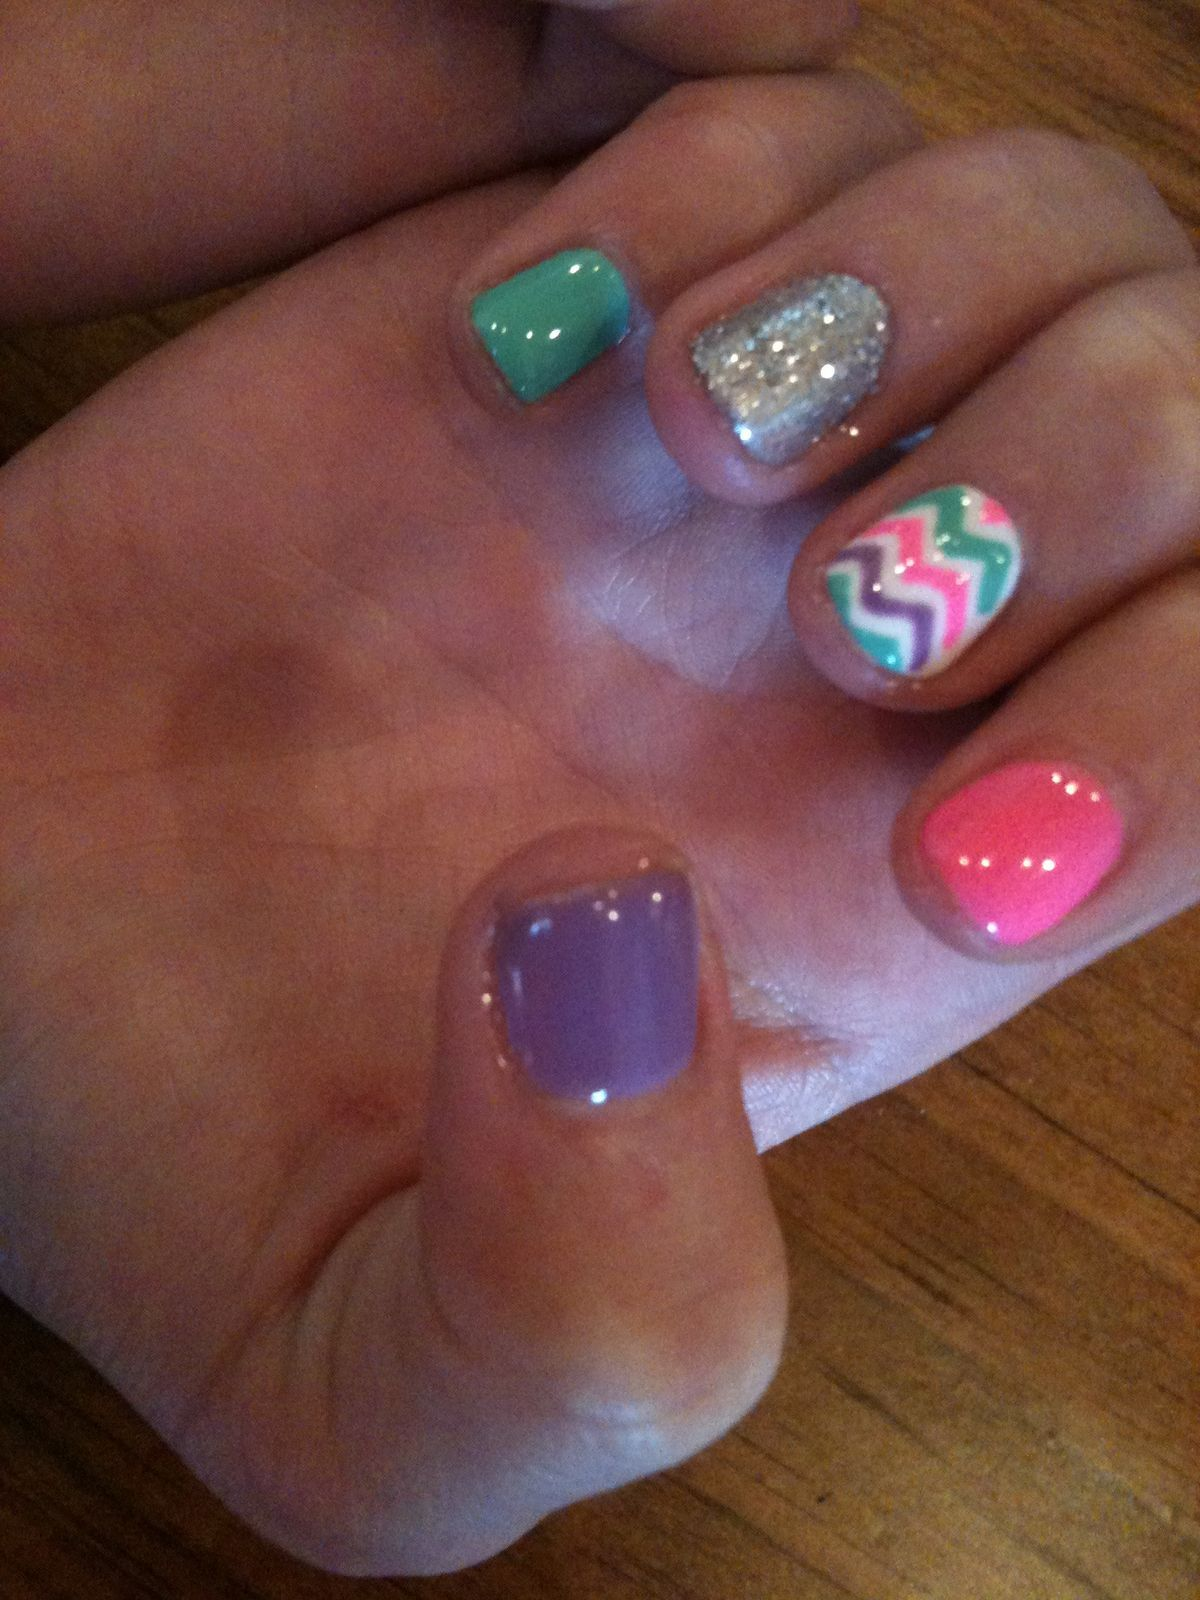 D4950eb675853b7a519d8fcdca3b422dg 12001600 pixels my cute chevron nails just wish i could go get them done right now discover and share your nail design ideas prinsesfo Choice Image